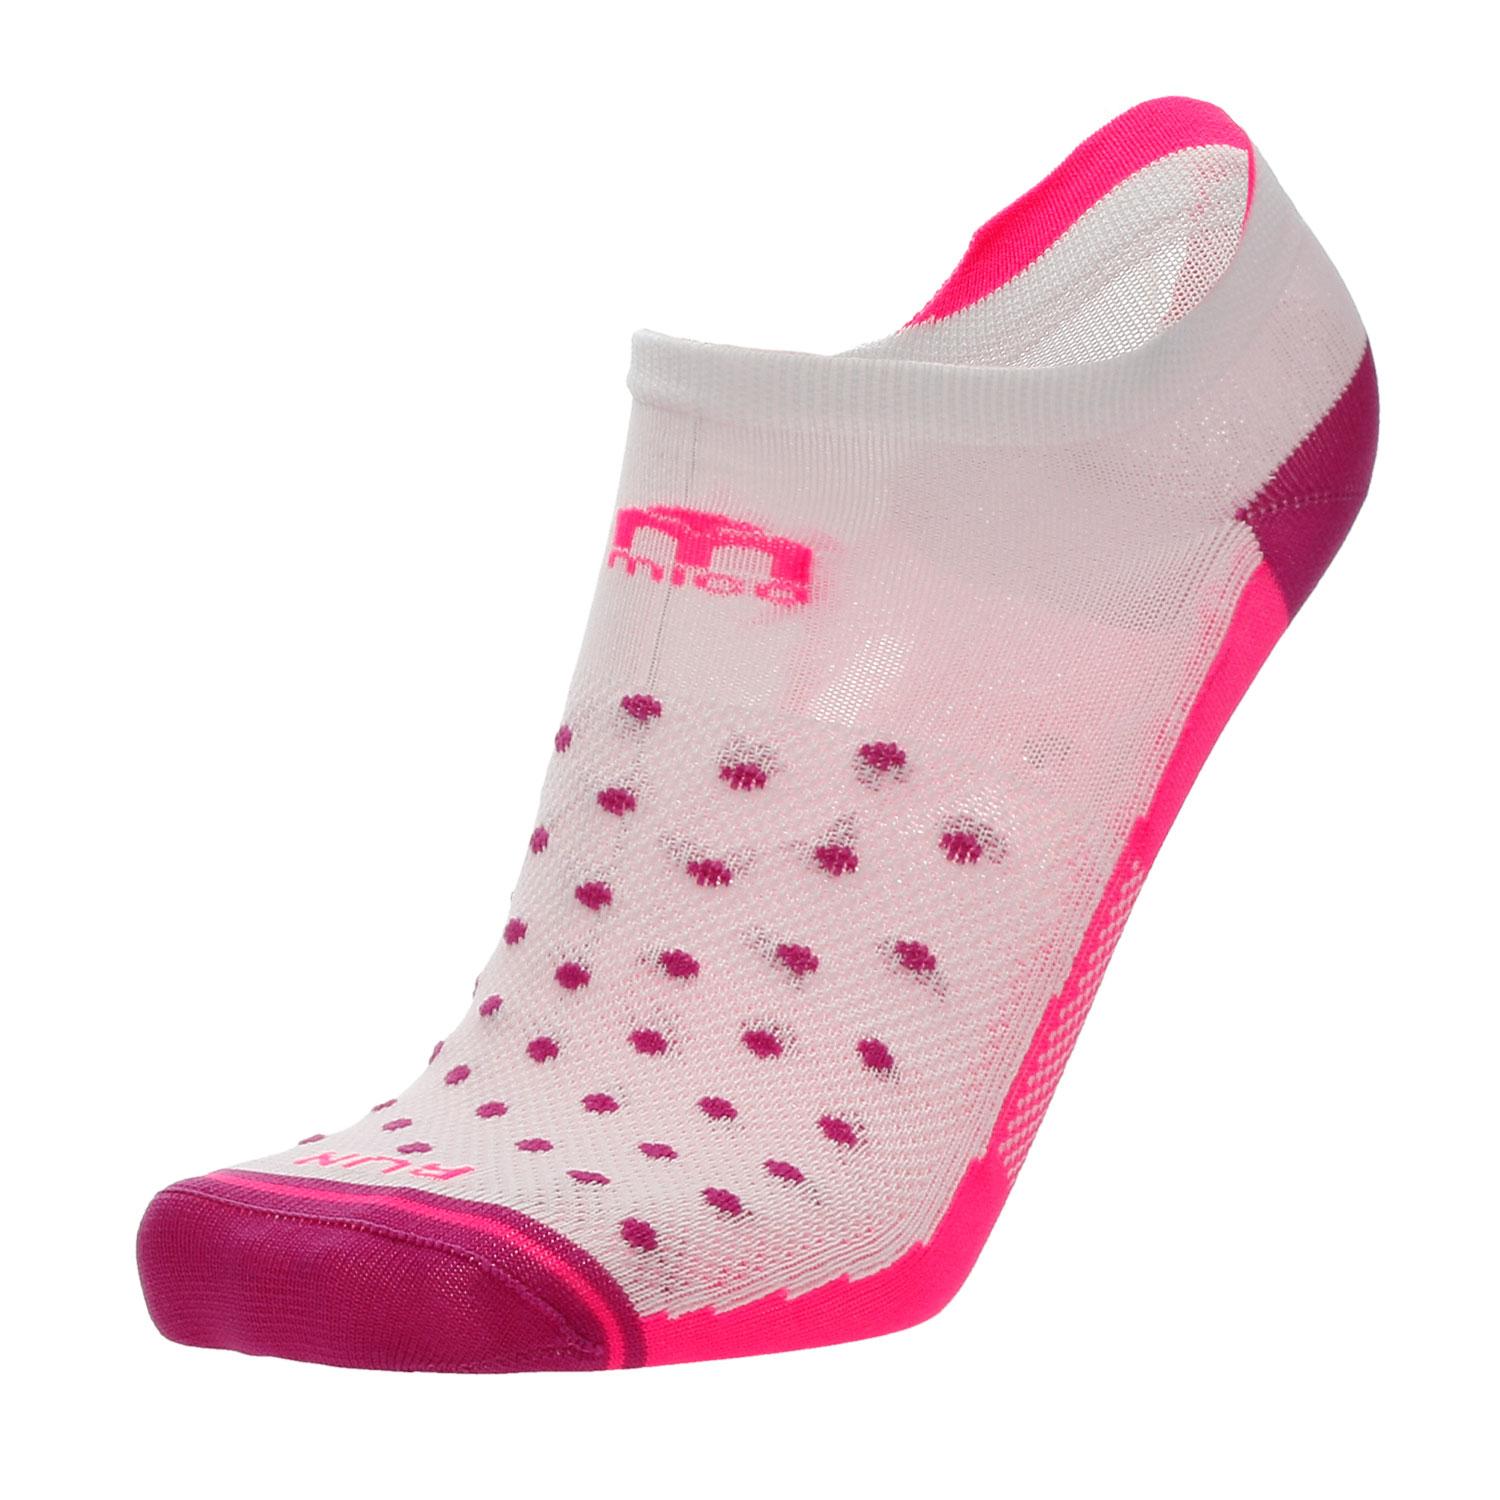 Mico Professional Extralight Weight Socks Woman - Bianco/Fucsia Fluo